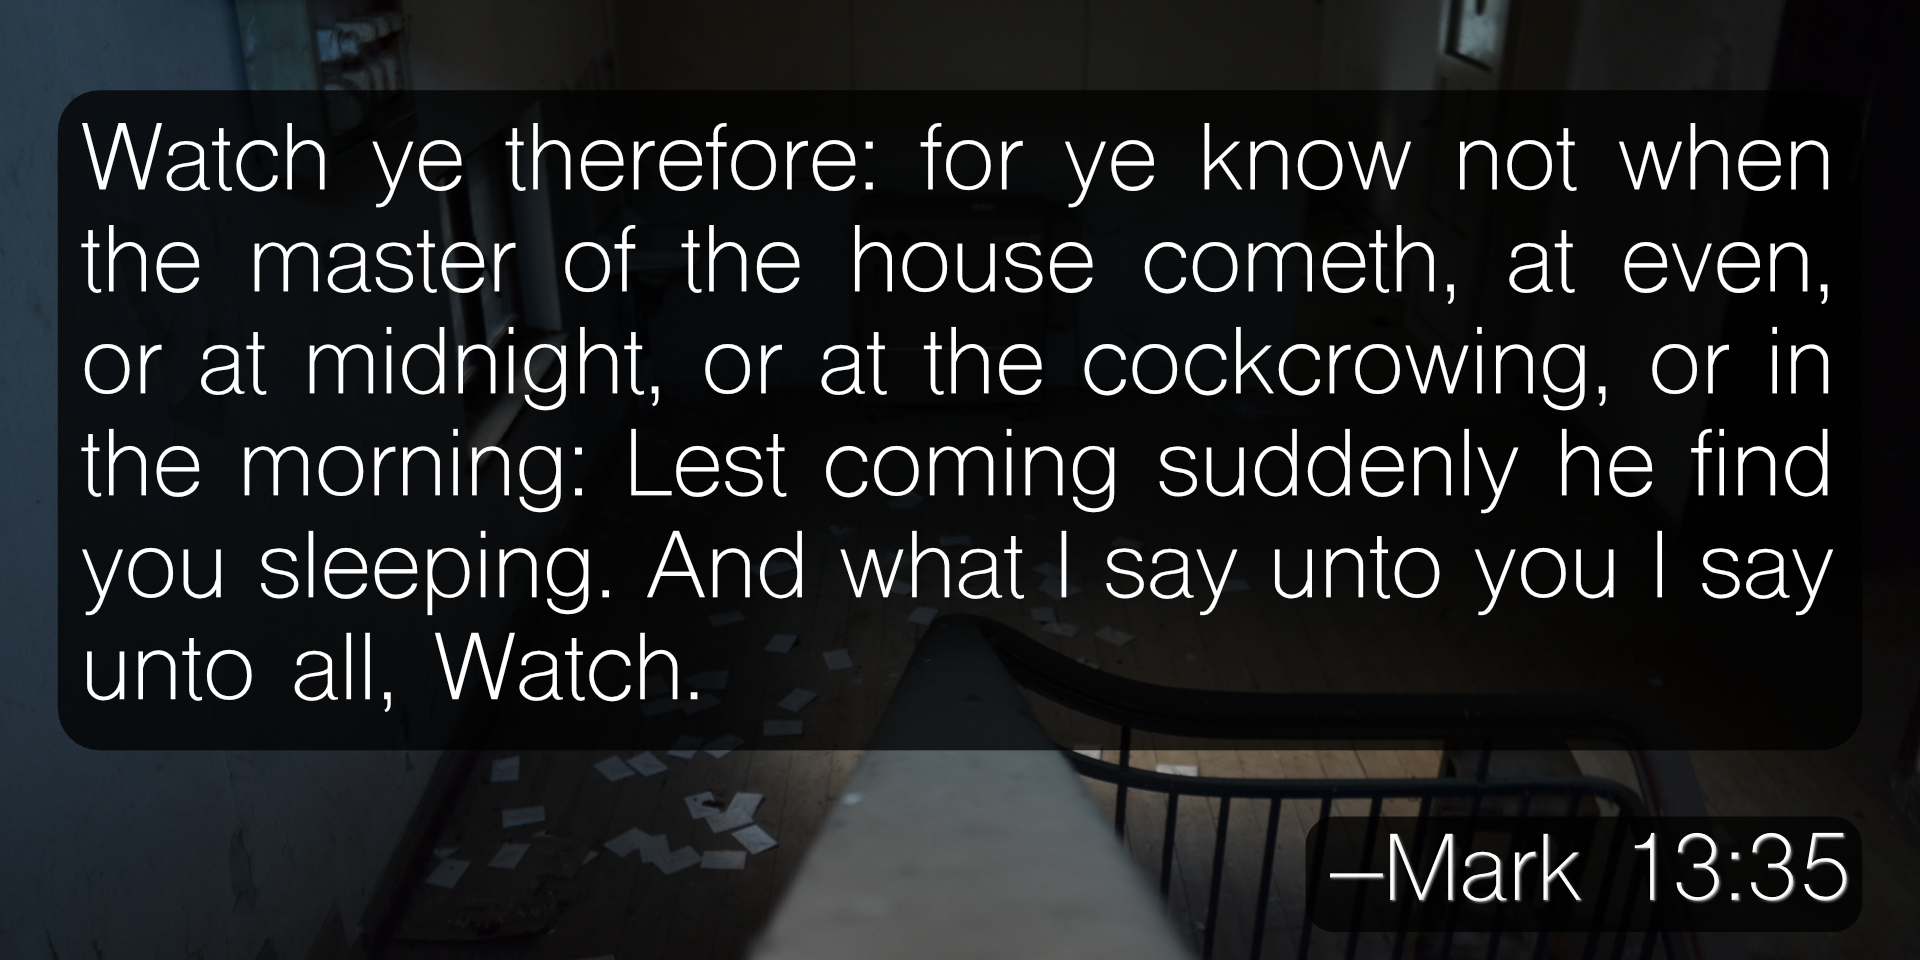 Watch ye therefore: for ye know not when the master of the house cometh, at even, or at midnight, or at the cockcrowing, or in the morning: Lest coming suddenly he find you sleeping. And what I say unto you I say unto all, Watch. –Mark 13:35-37